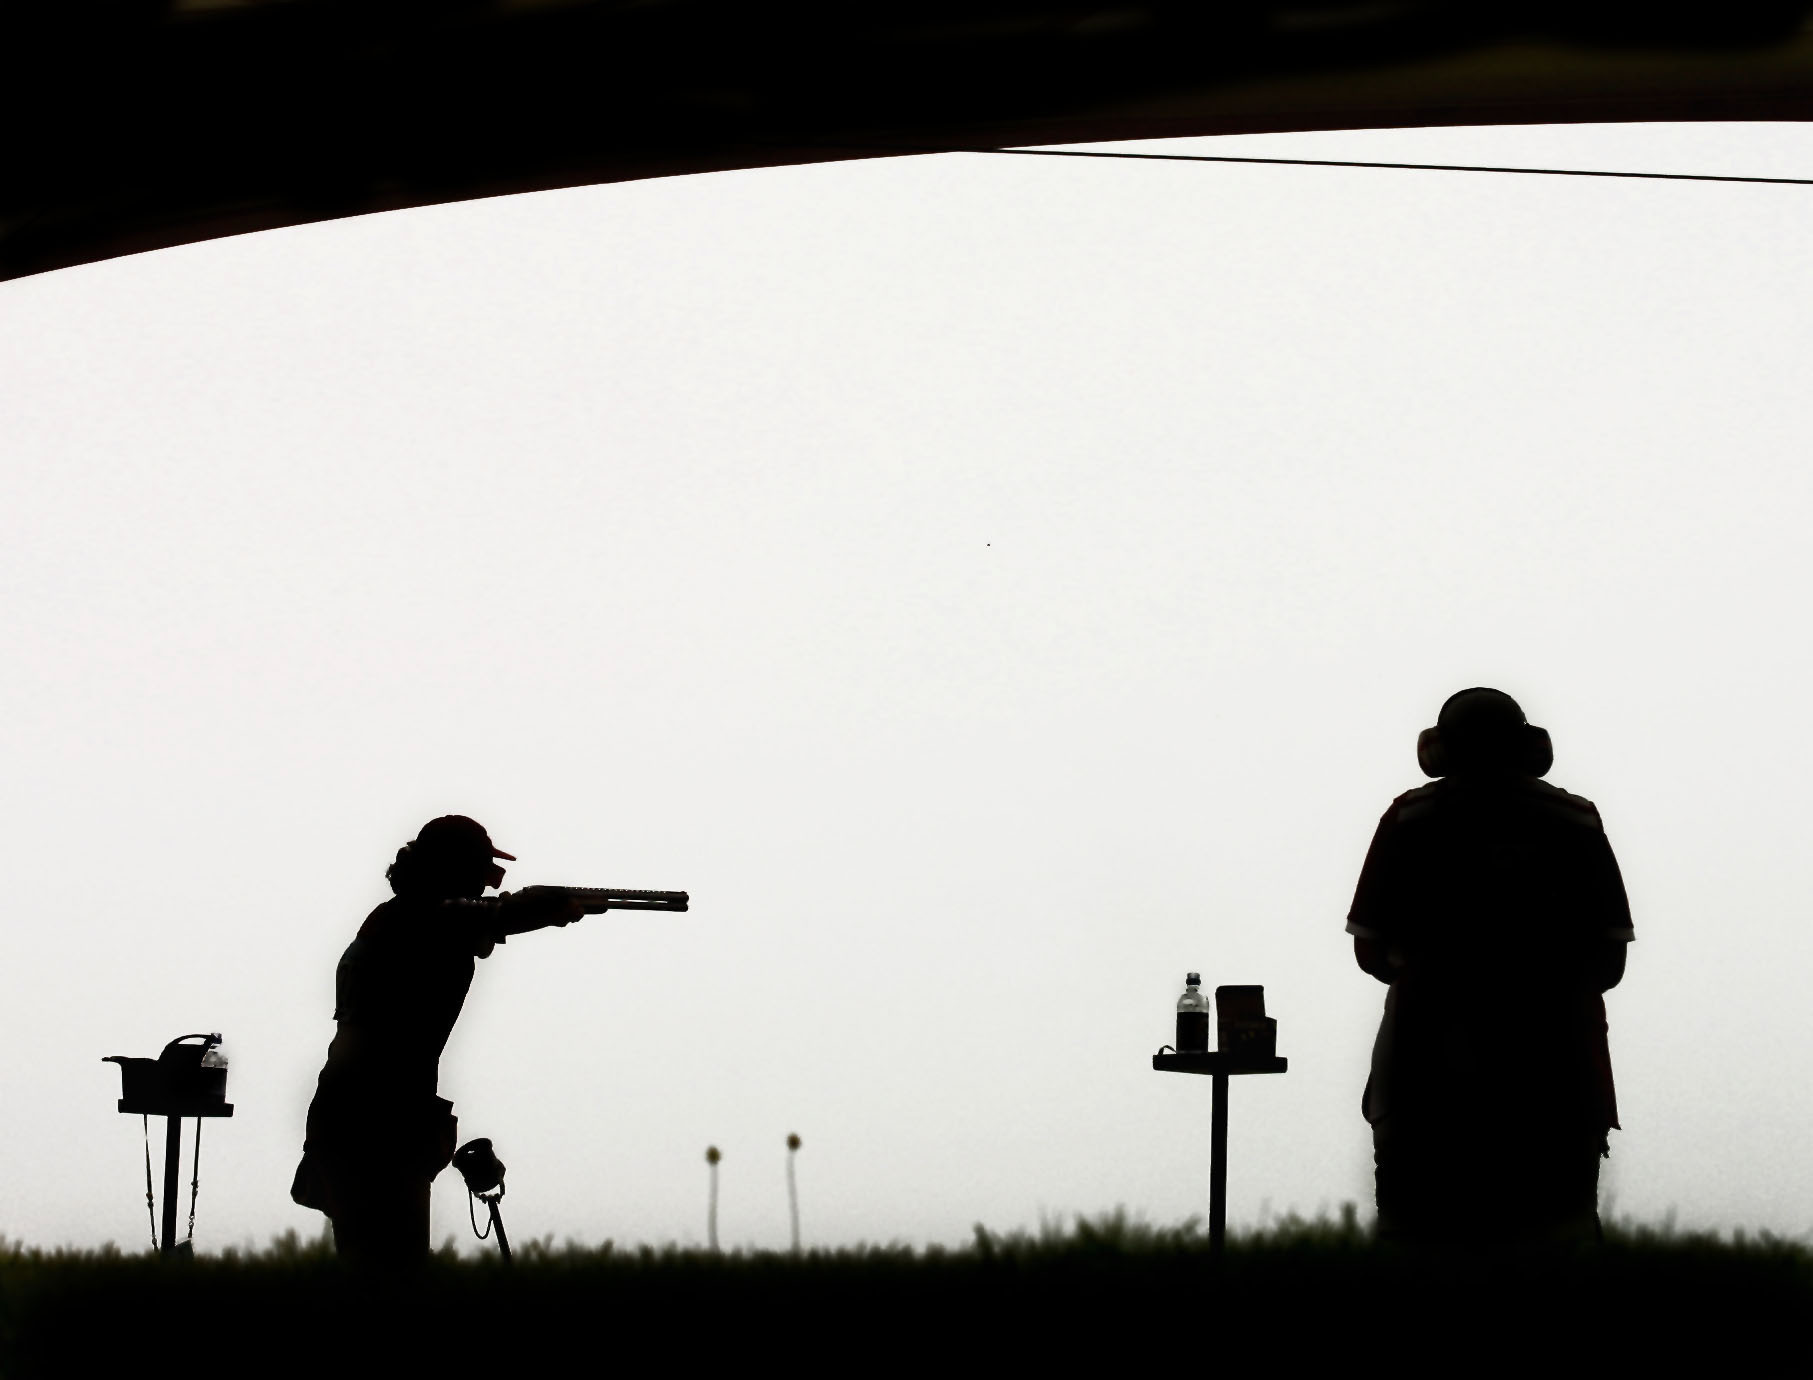 Bisley hosted the shooting competition the last time England staged the Commonwealth Games in Manchester in 2002, but Birmingham were not prepared to invest money in refurbishing it for 2022 ©Getty Images